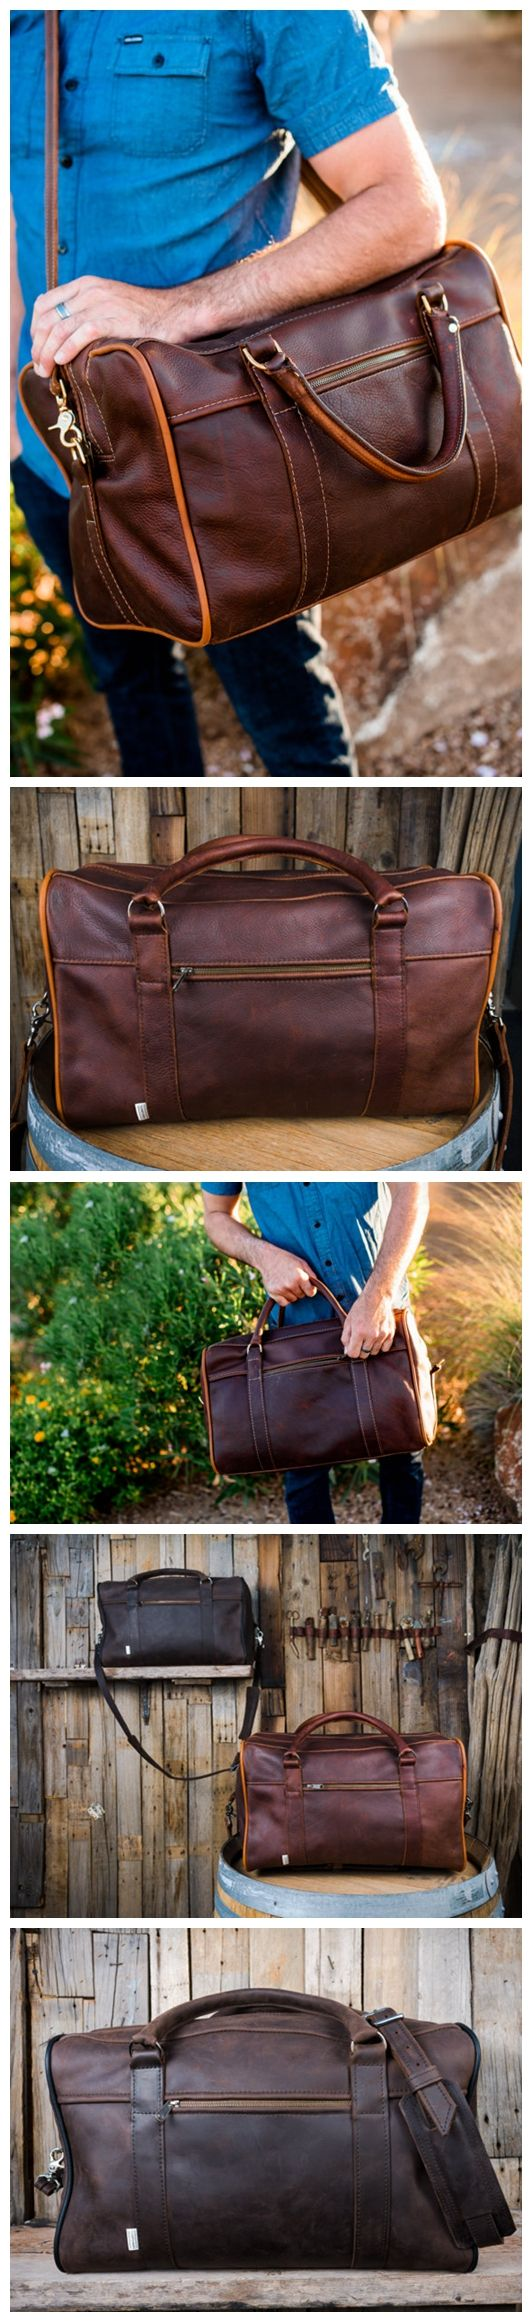 Men's Leather Duffle Bag Mens Weekender Bag Weekend Bag Travel Bag Carry On…